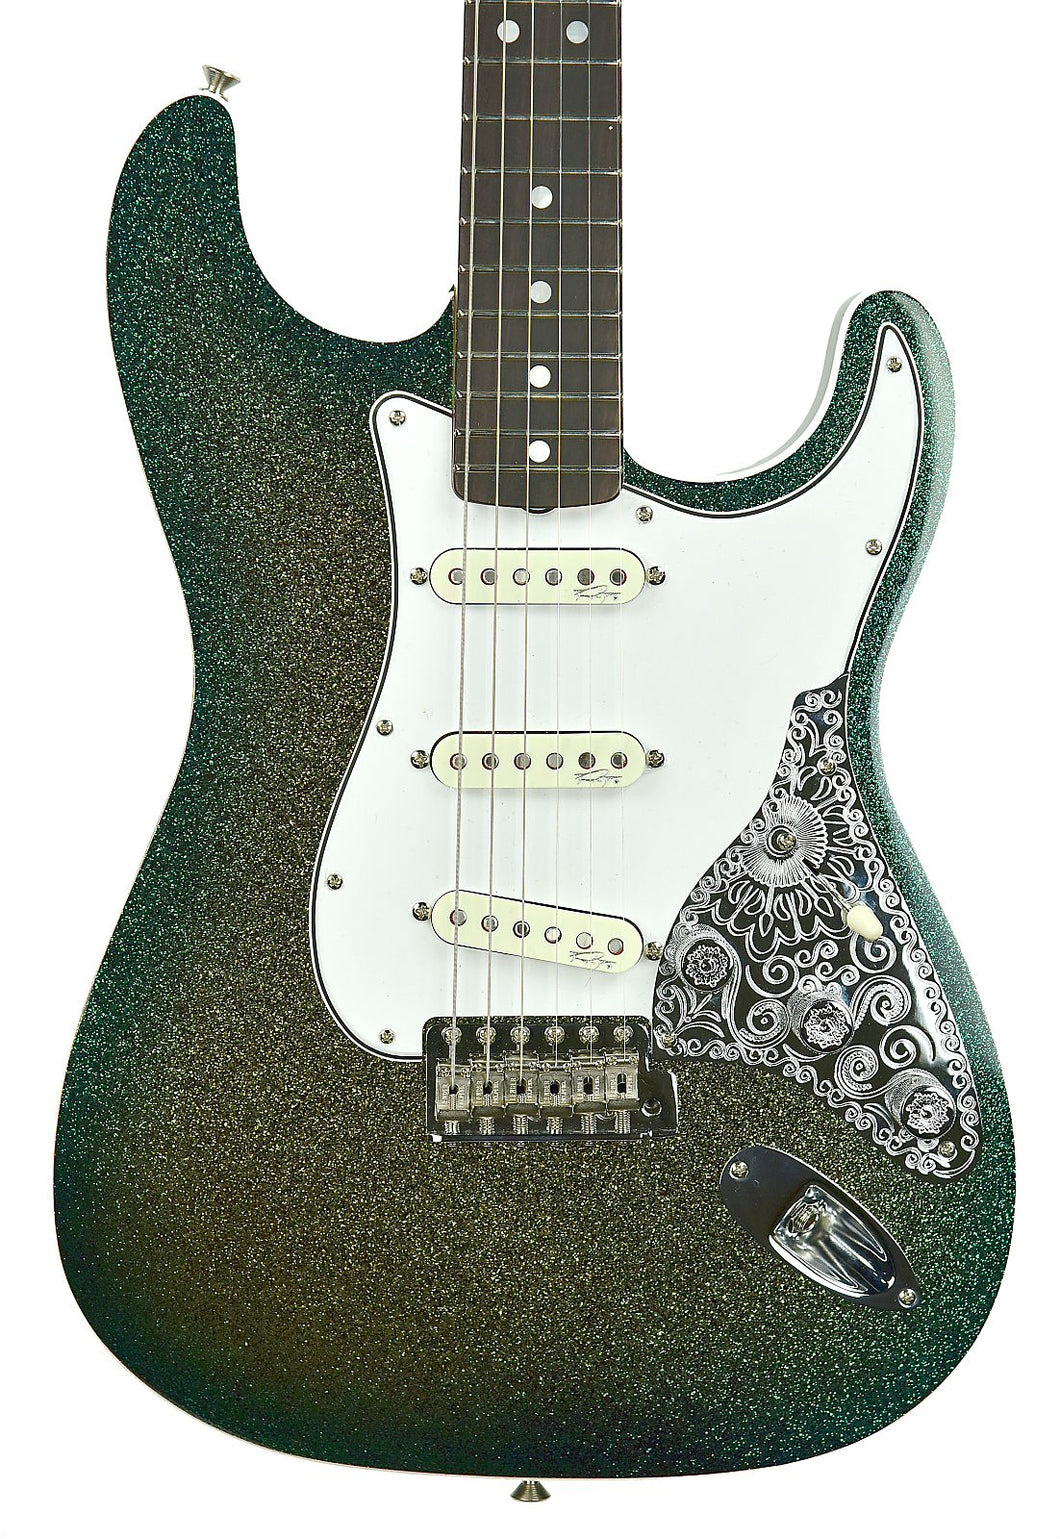 Fender Custom Shop Founder's Design Strat by Mark Kendrick in Golden Teal Sparkle | Front Small